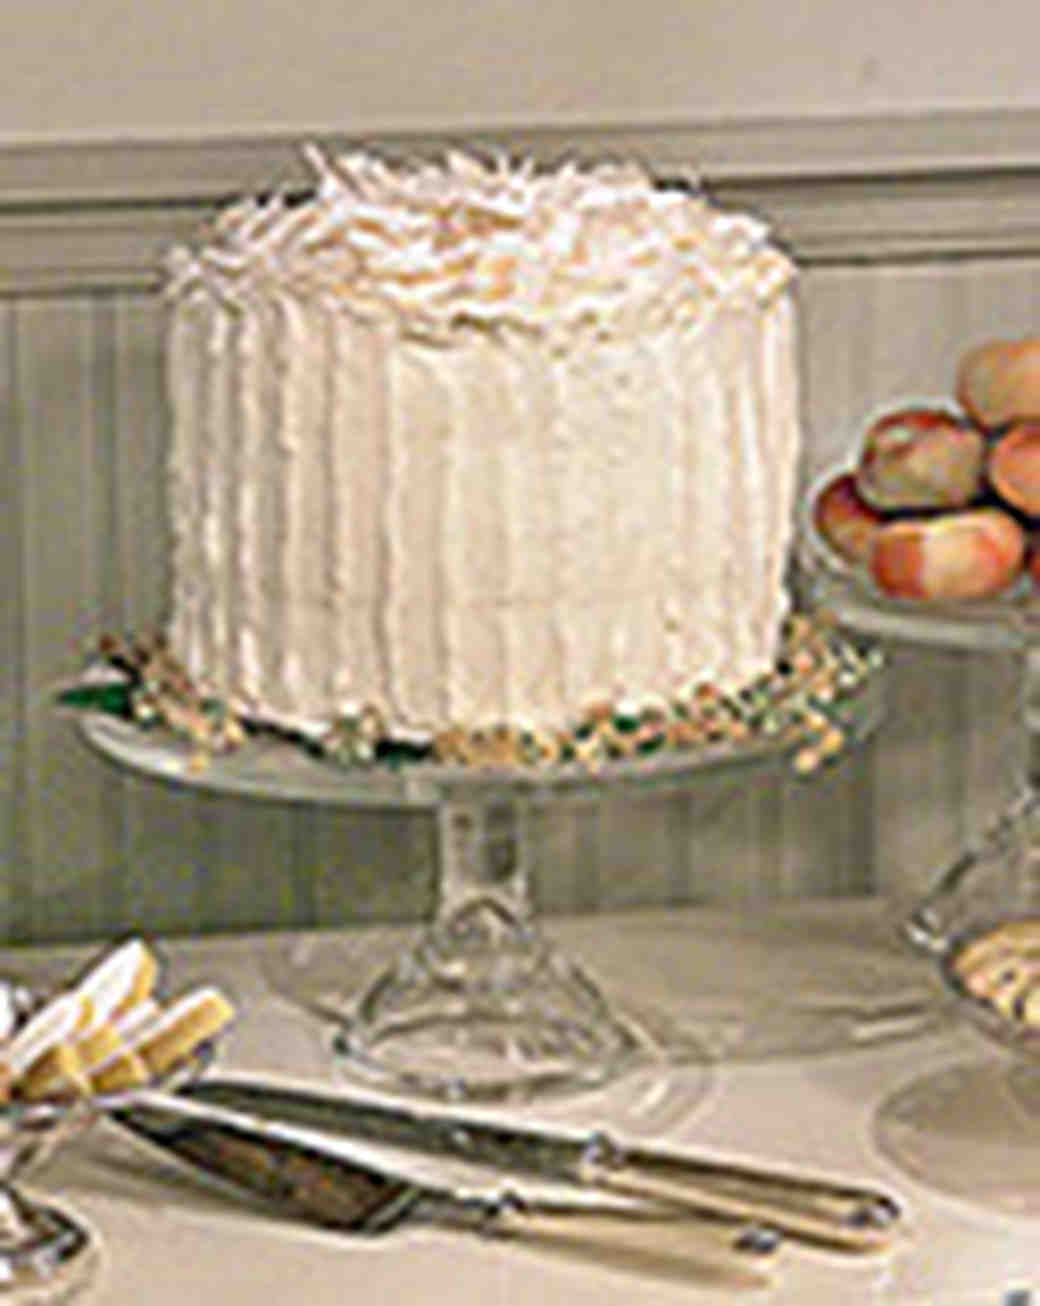 Coconut Column Cake